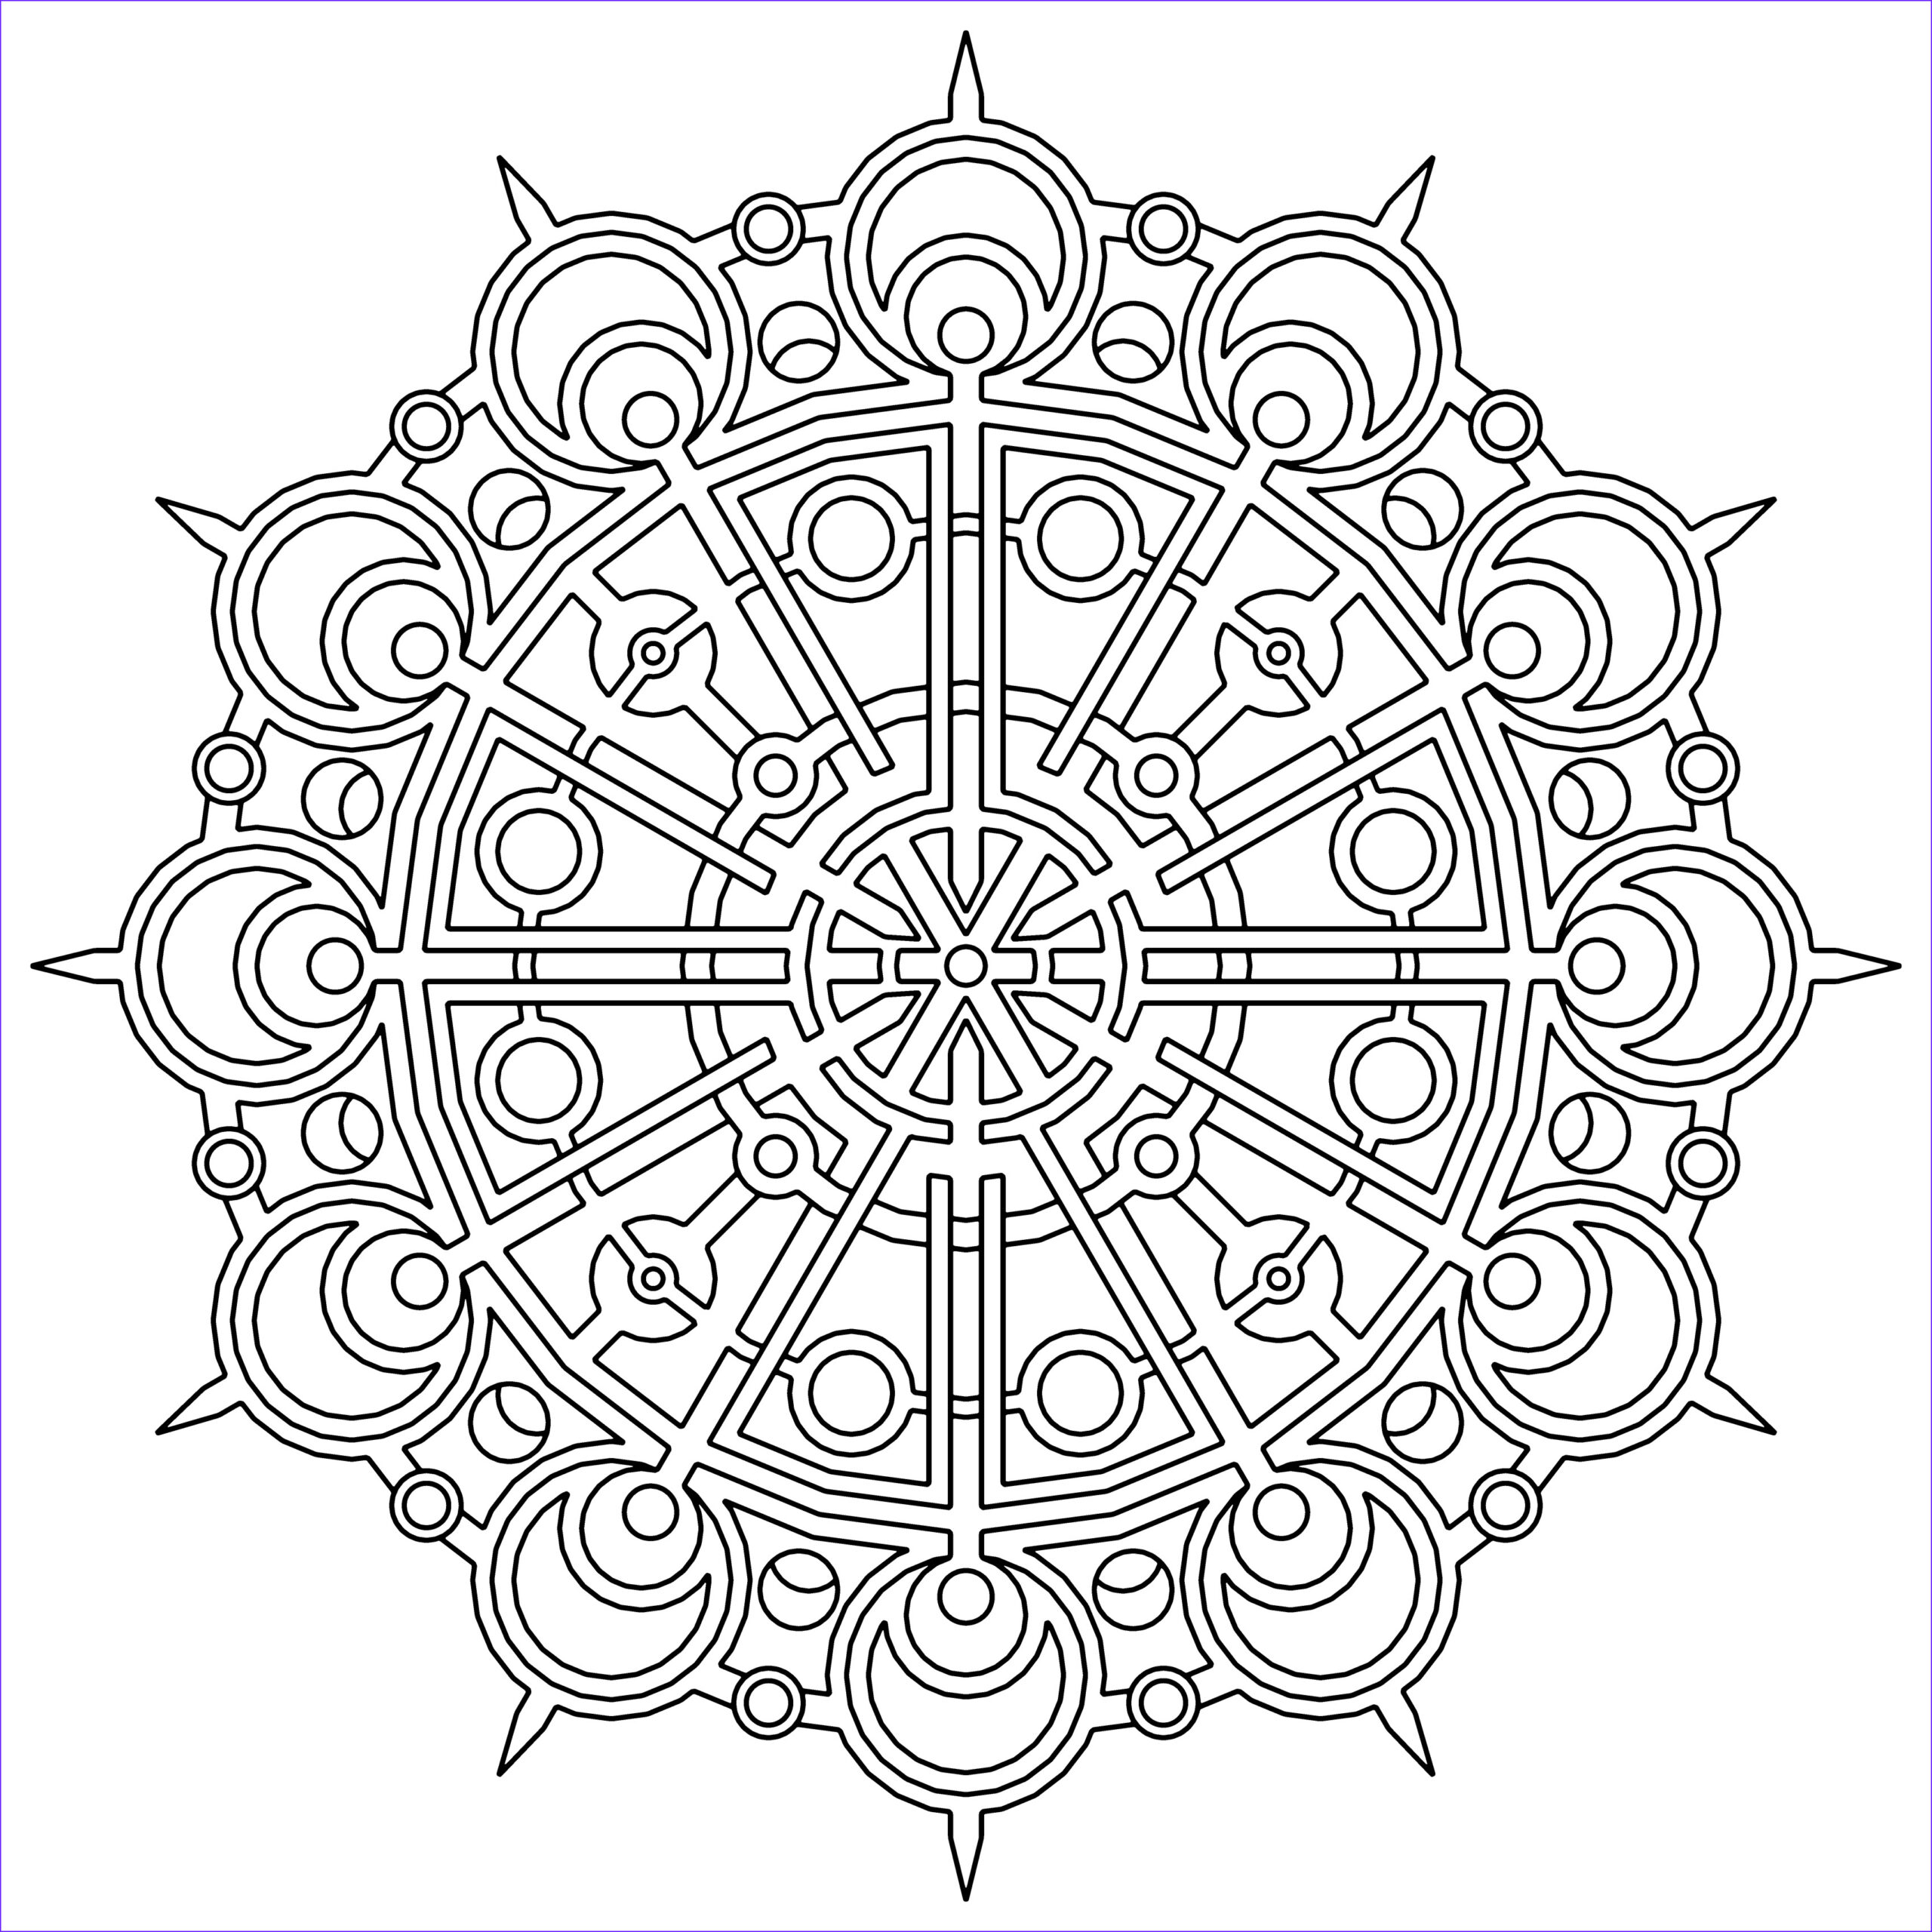 Coloring Paes Cool Gallery Free Printable Geometric Coloring Pages for Kids